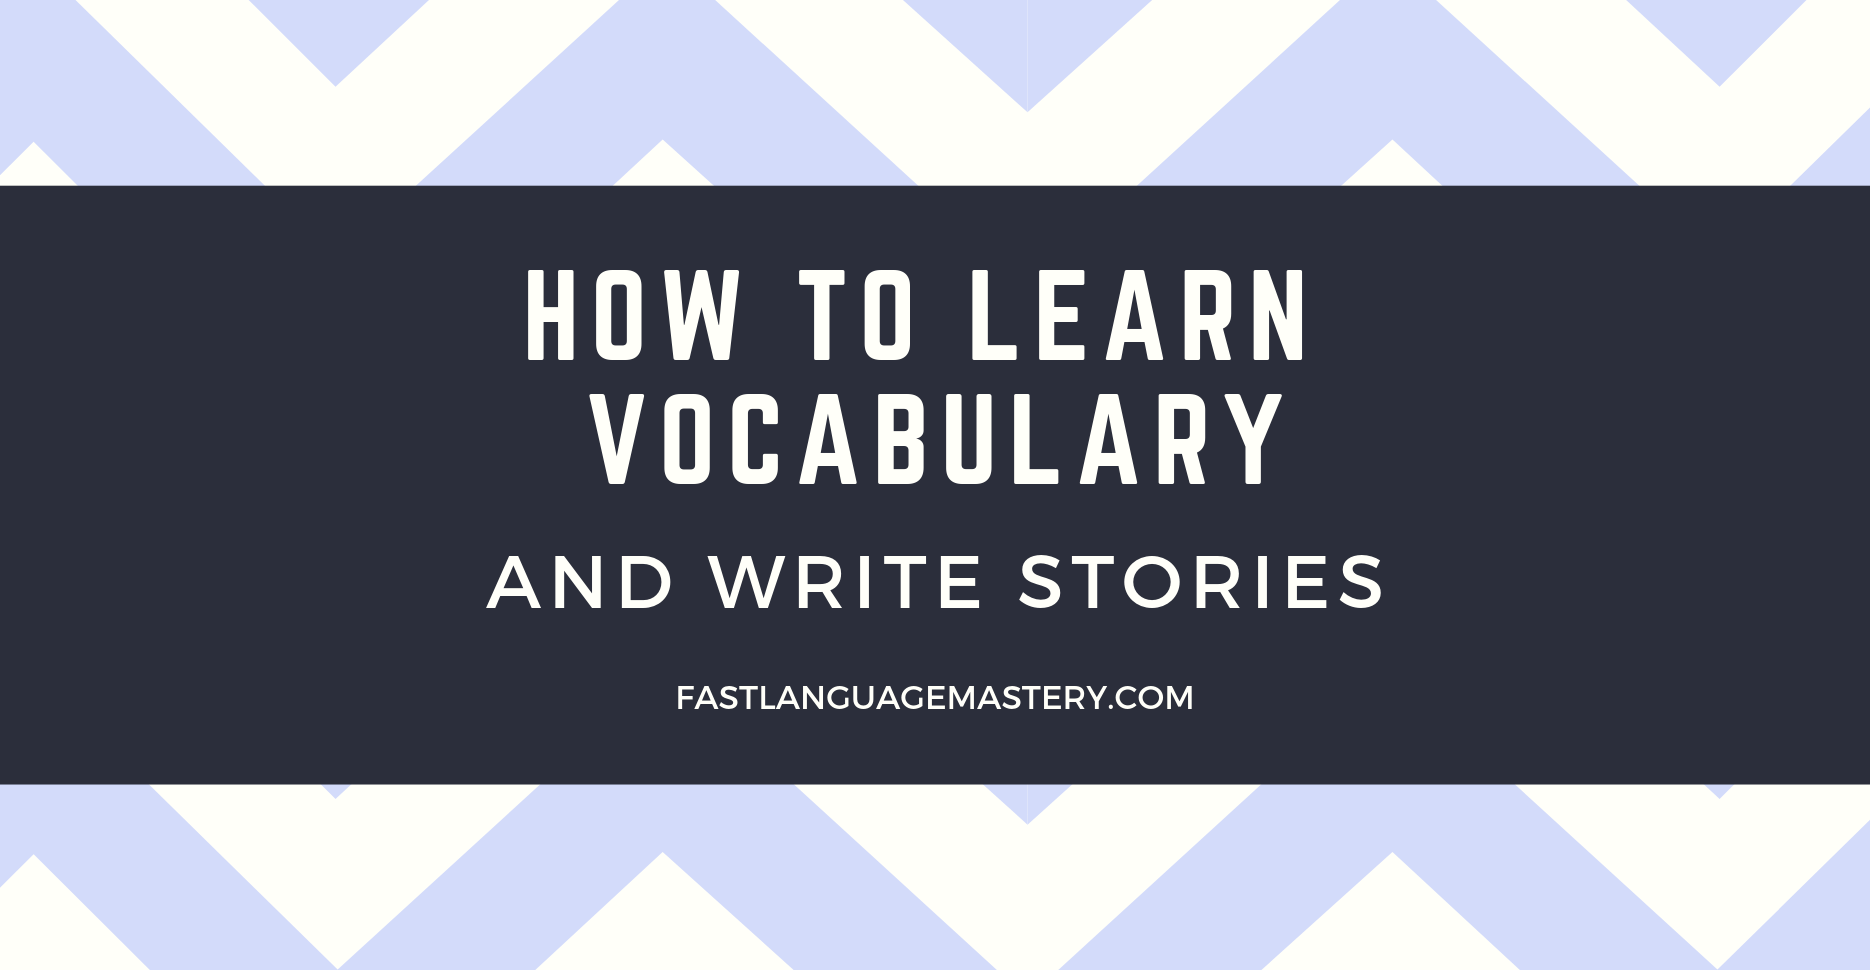 How to learn Vocabulary and write stories